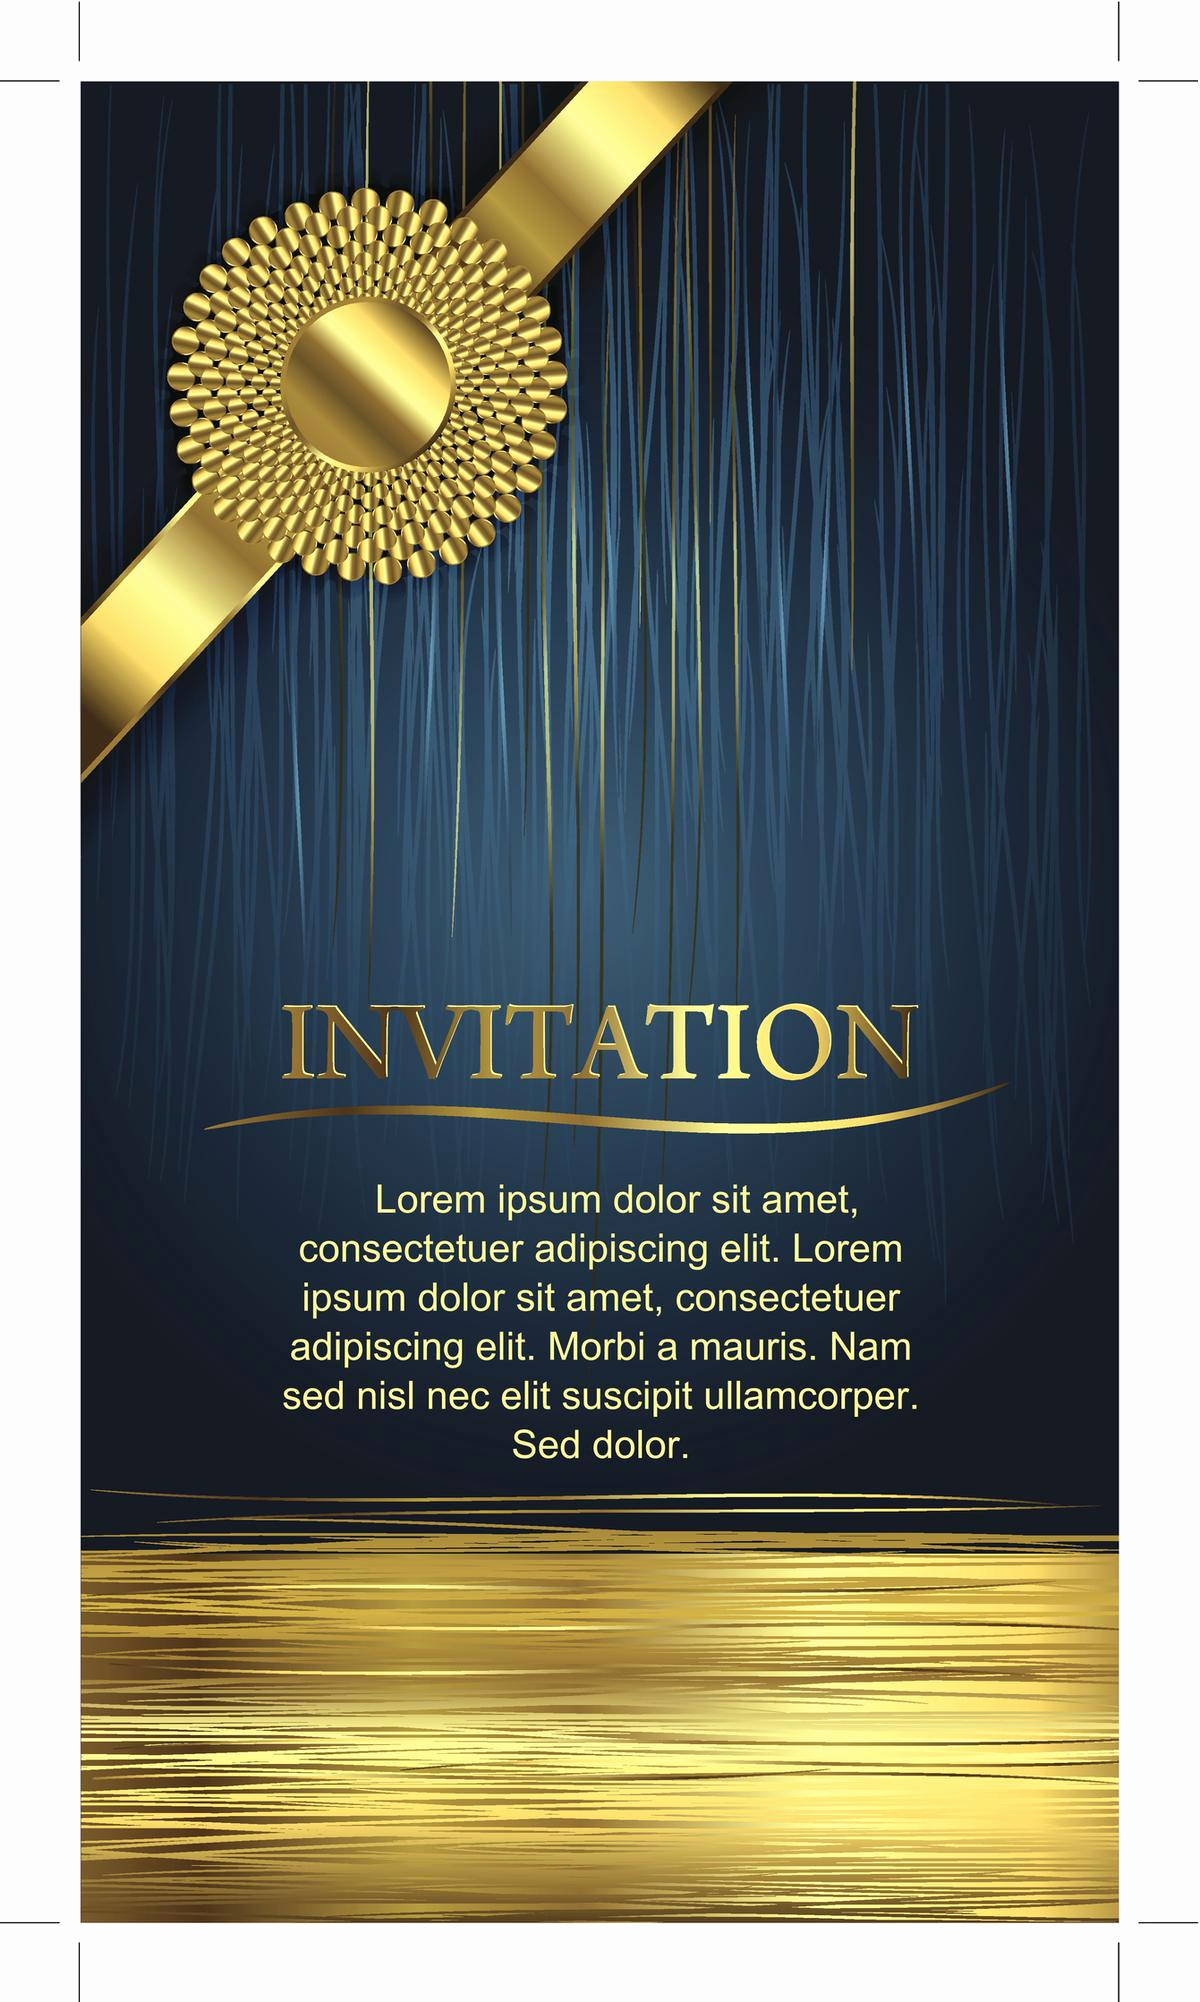 50th Birthday Party Invitation Wording Best Of Graciously Invite People Birthday Invitation Wording Samples